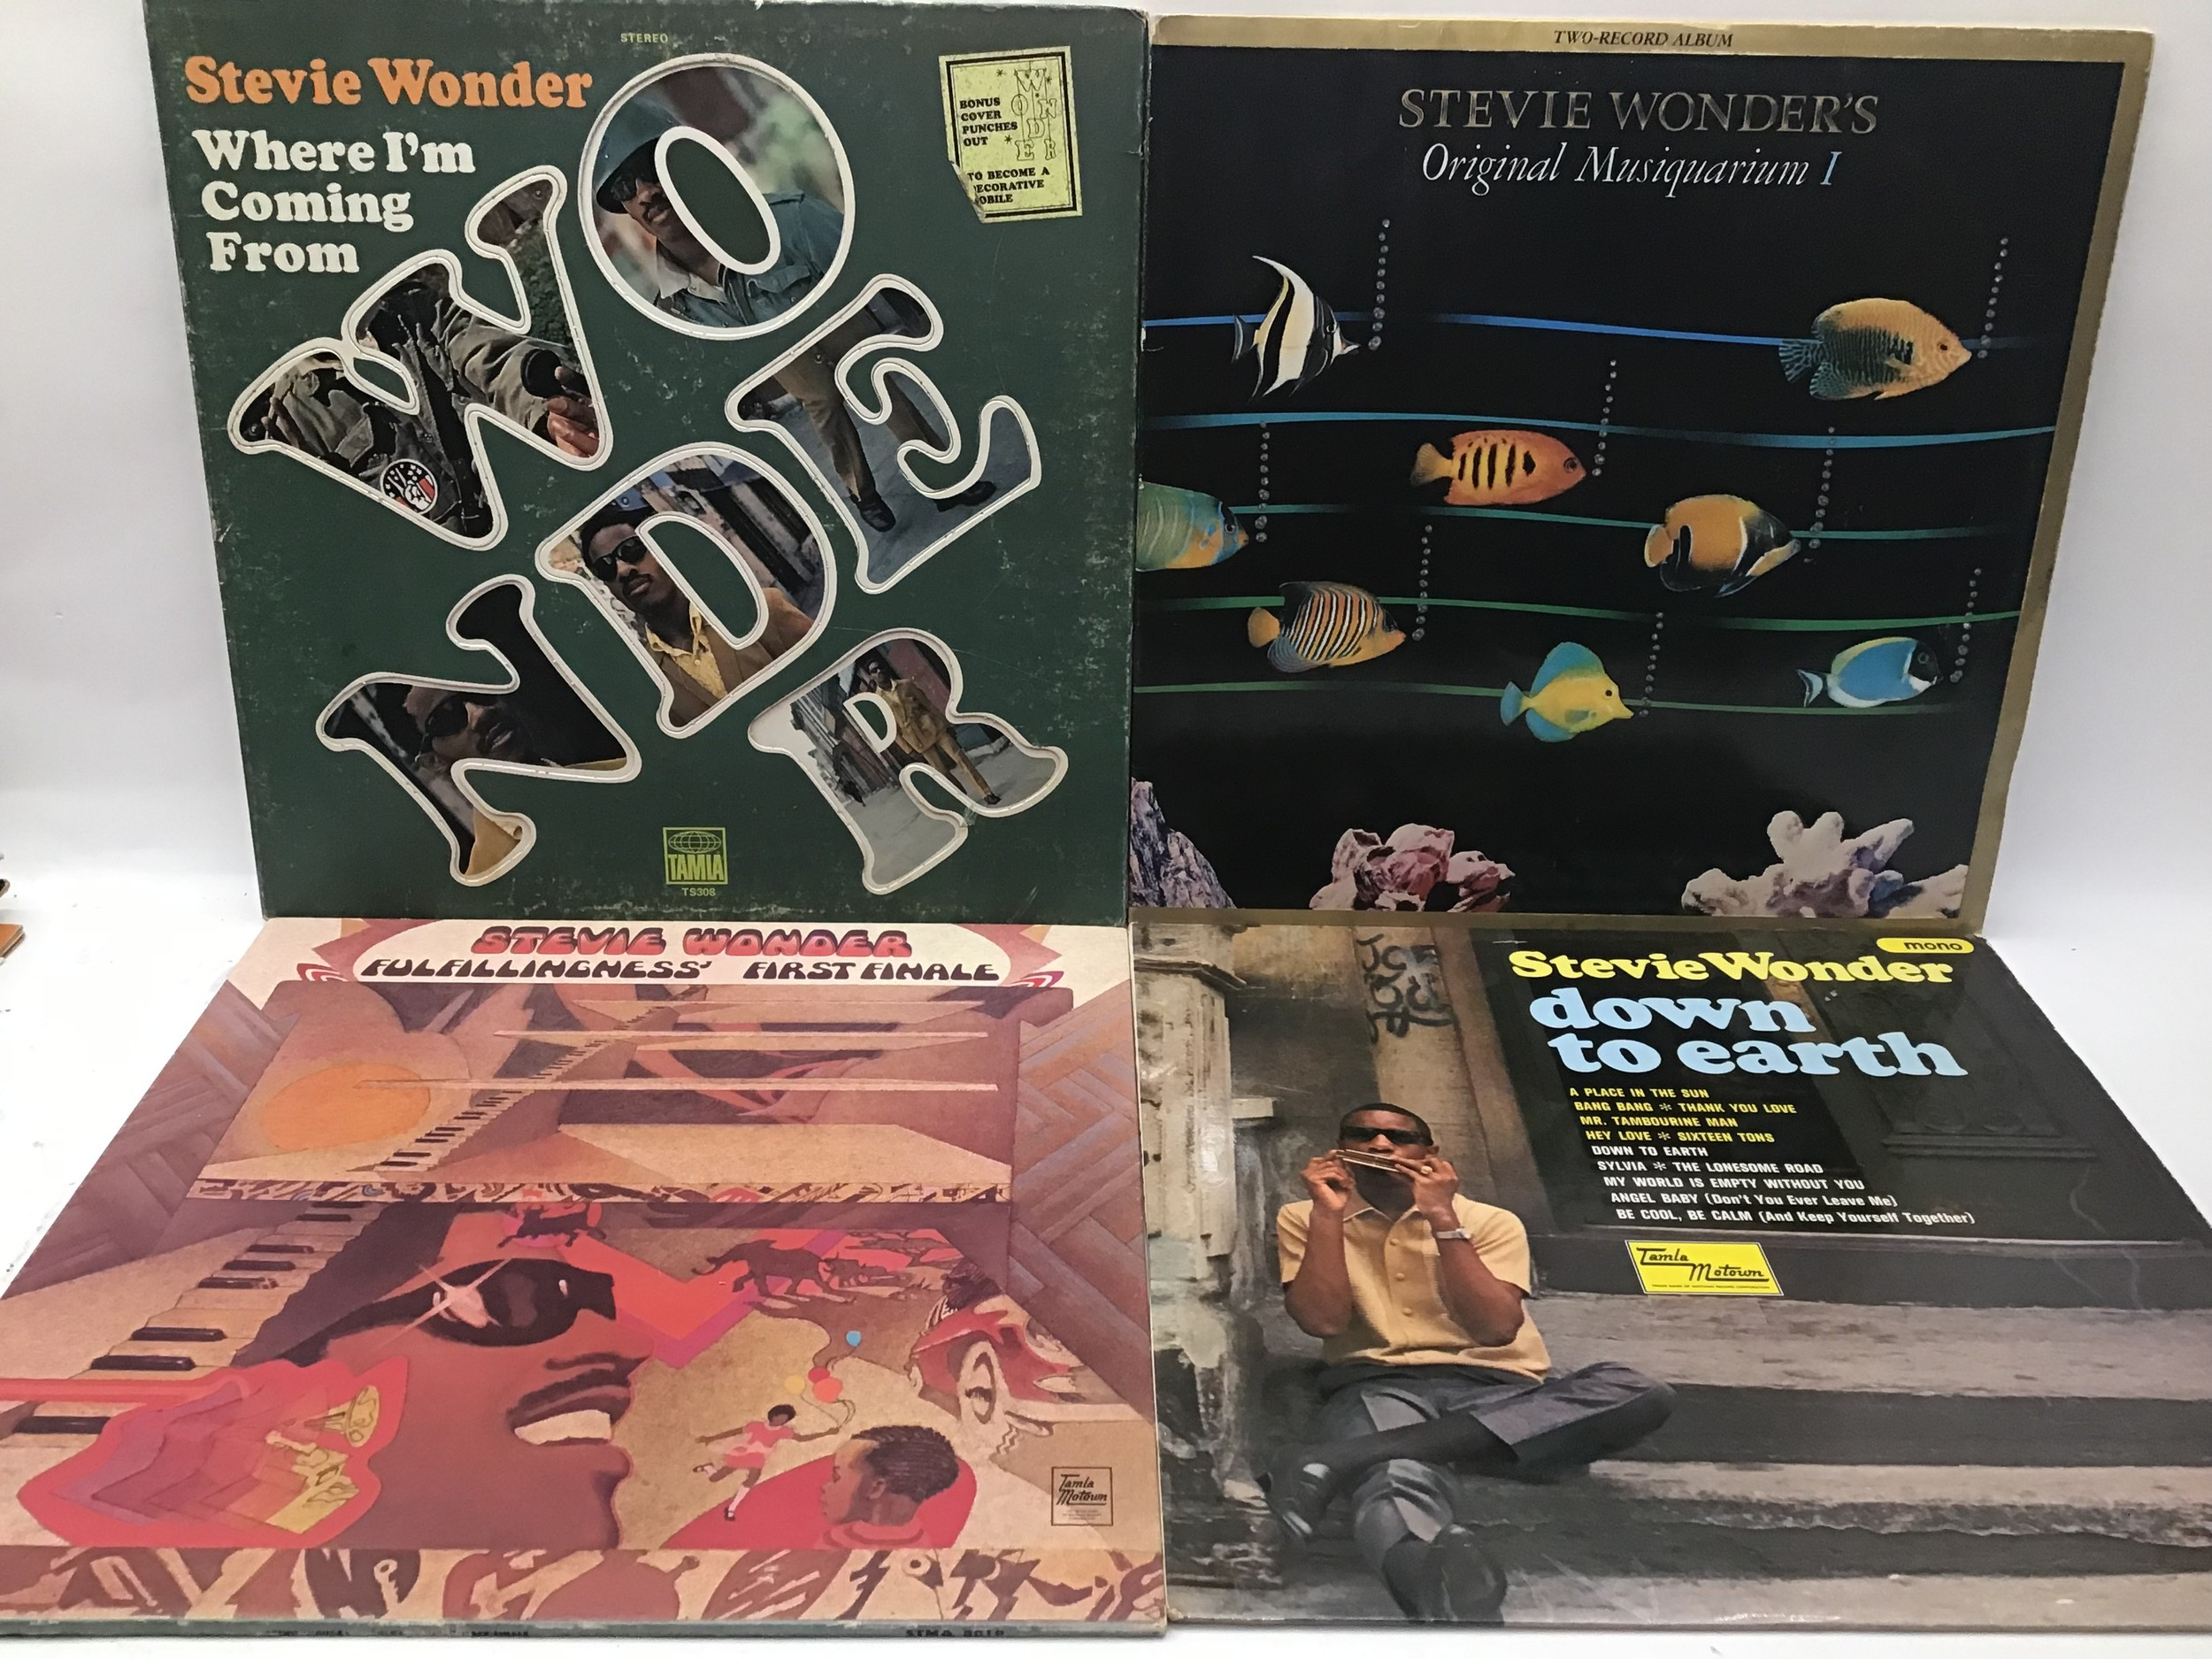 STEVIE WONDER VINYL LP RECORDS X 7. Found here in VG+ conditions with a demo copy of ?Where I?m - Image 2 of 5